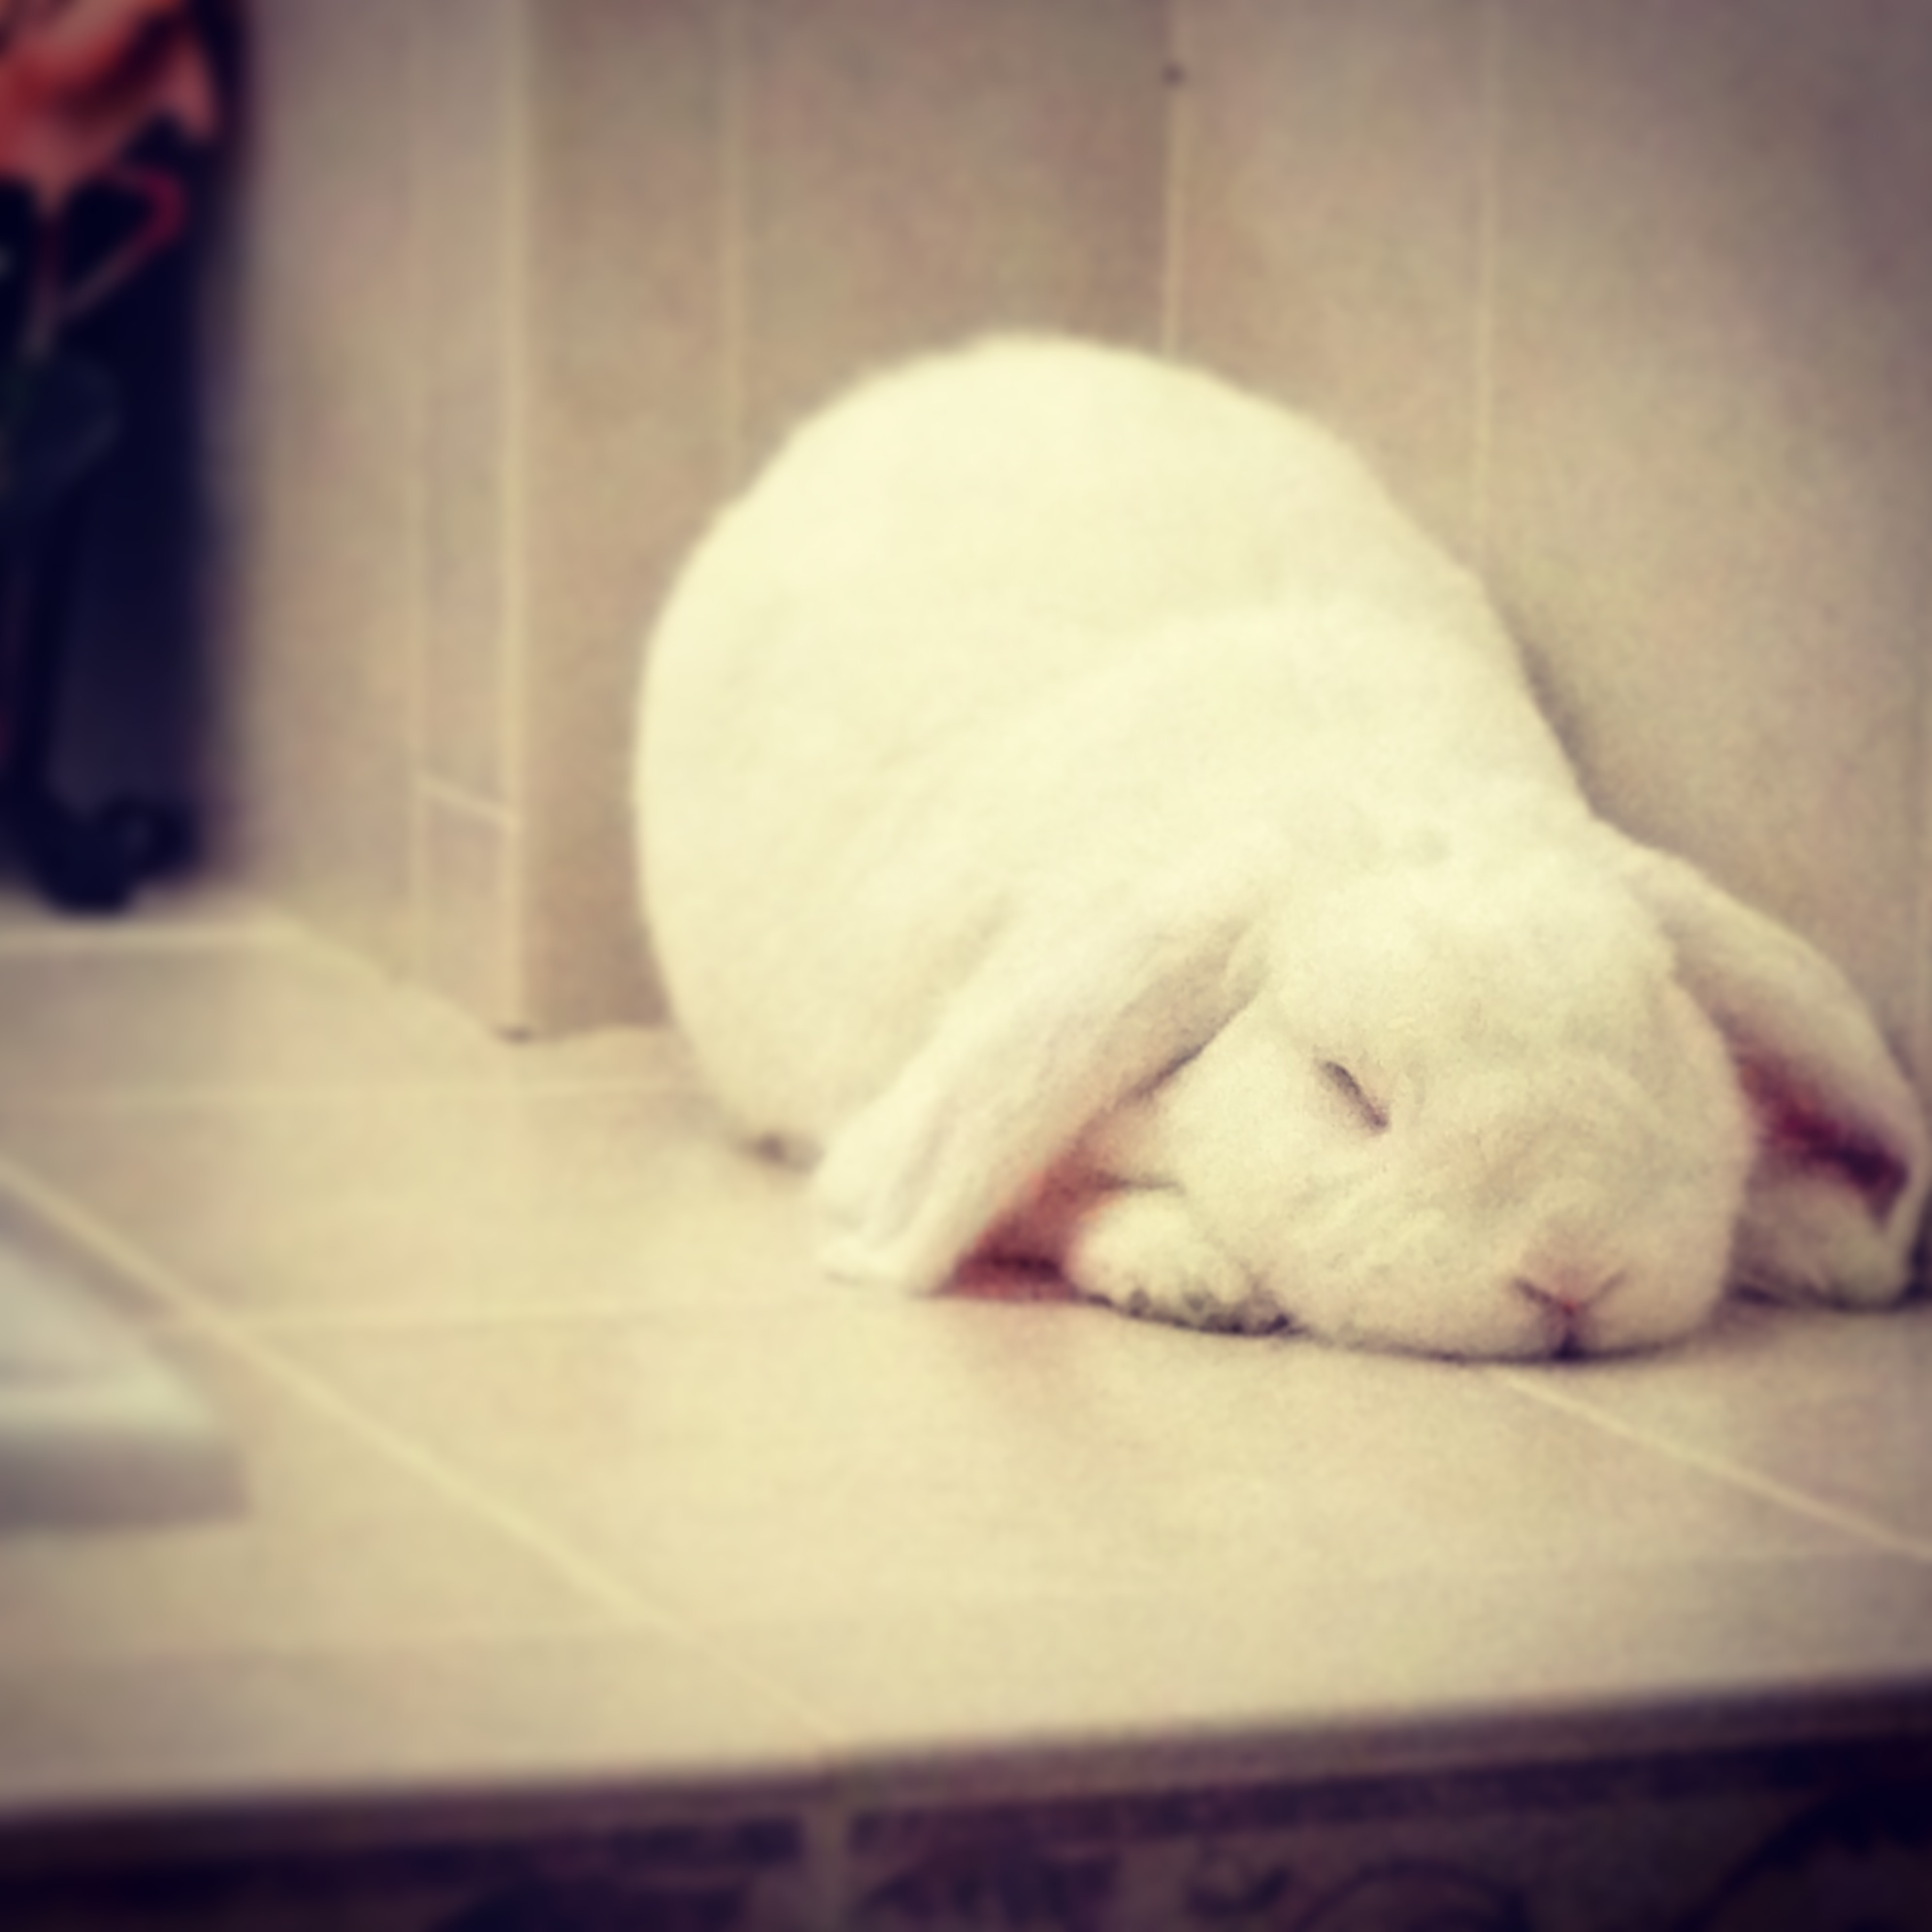 Bunny Found a Quiet Corner for a Peaceful Nap